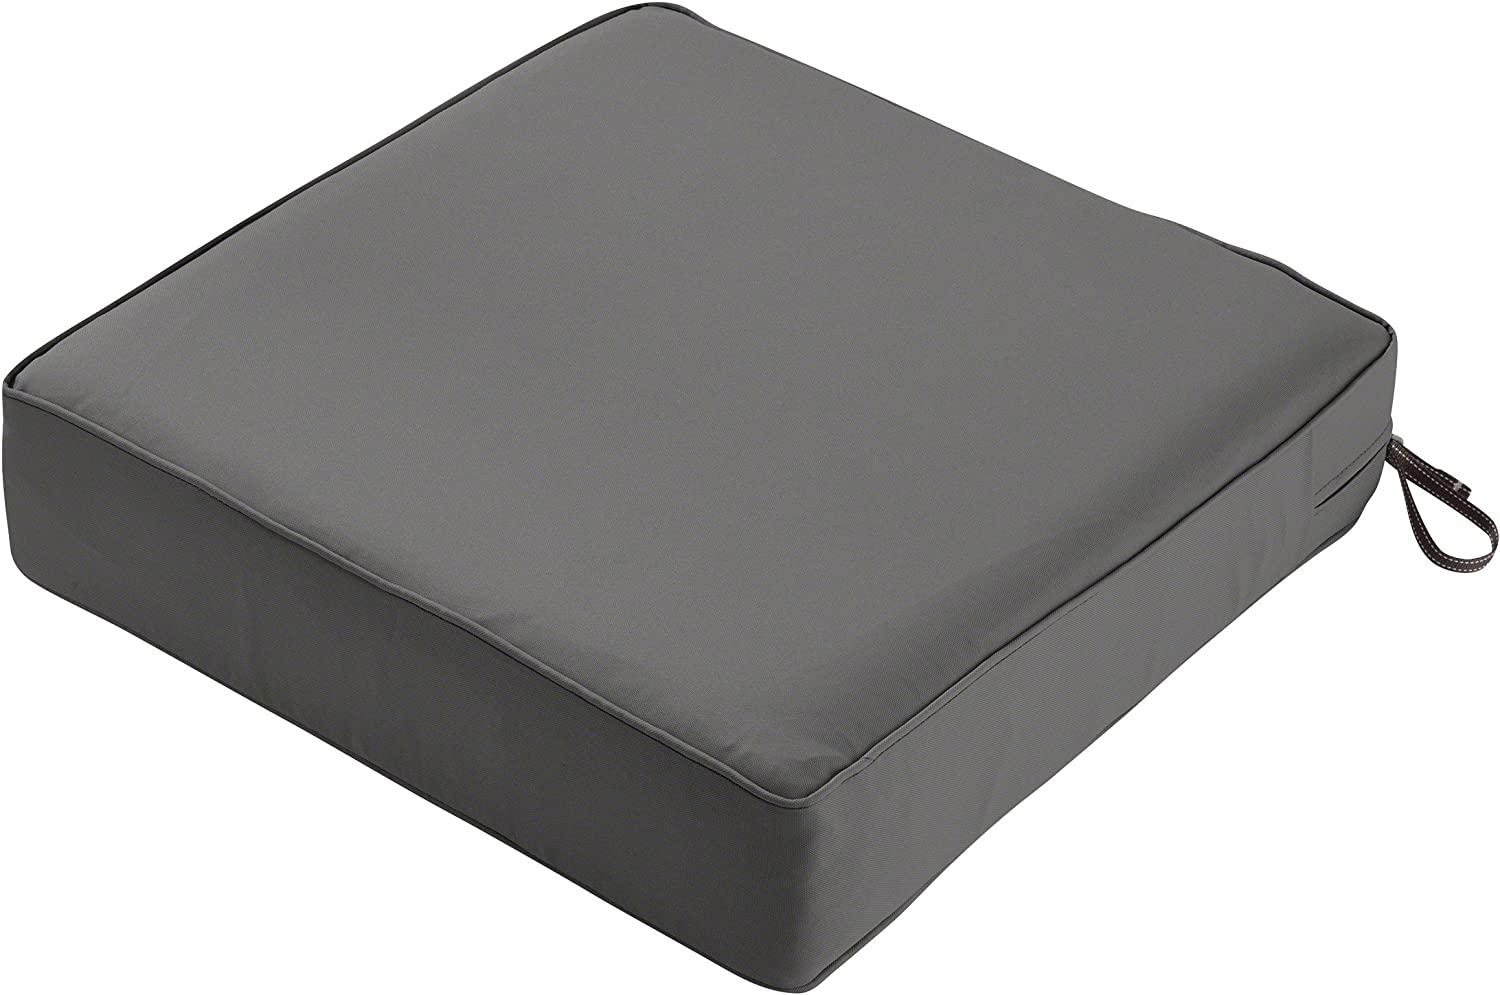 "Classic Accessories Montlake Seat Cushion Foam & Slip Cover, Light Charcoal, 25x25x5"" Thick"